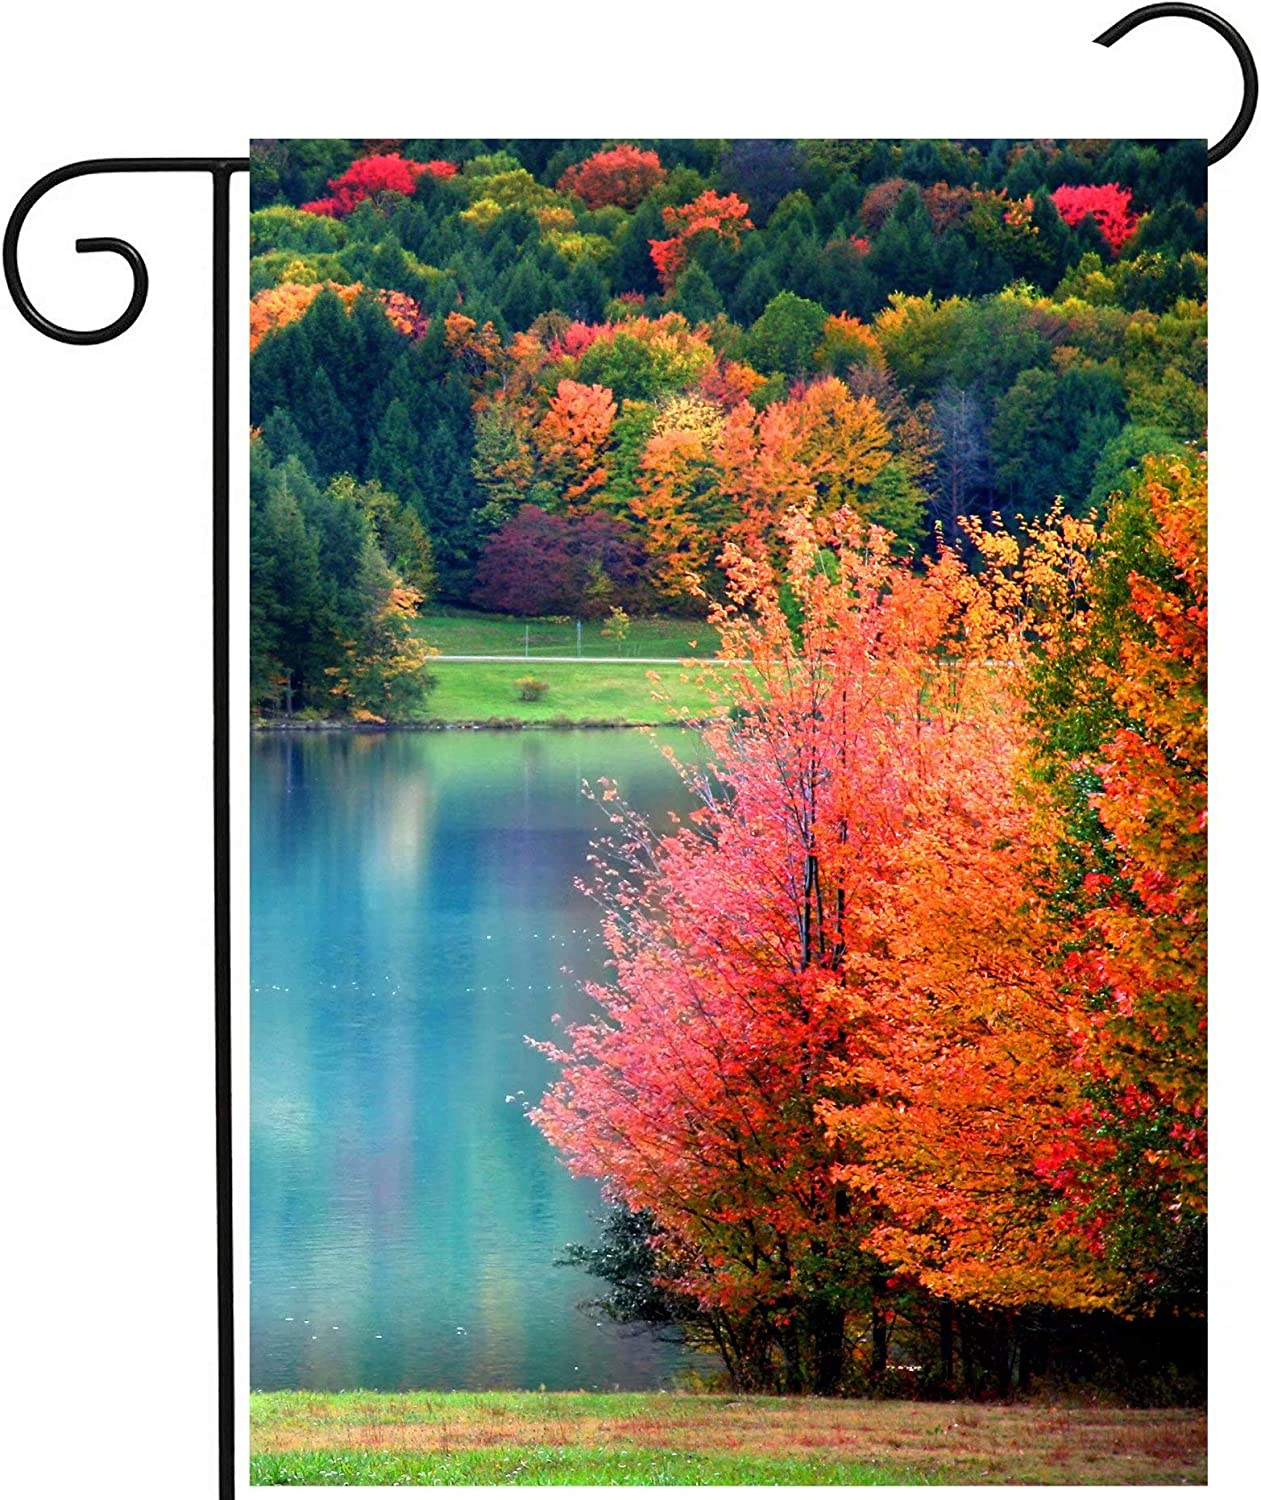 Pickako Scenic Autumn Landscape Colorful Trees Lake River Pond in Forest Garden Yard Flag 12 x 18 Inch, Double Sided Outdoor Decorative Welcome Flags Banners for Home House Lawn Patio